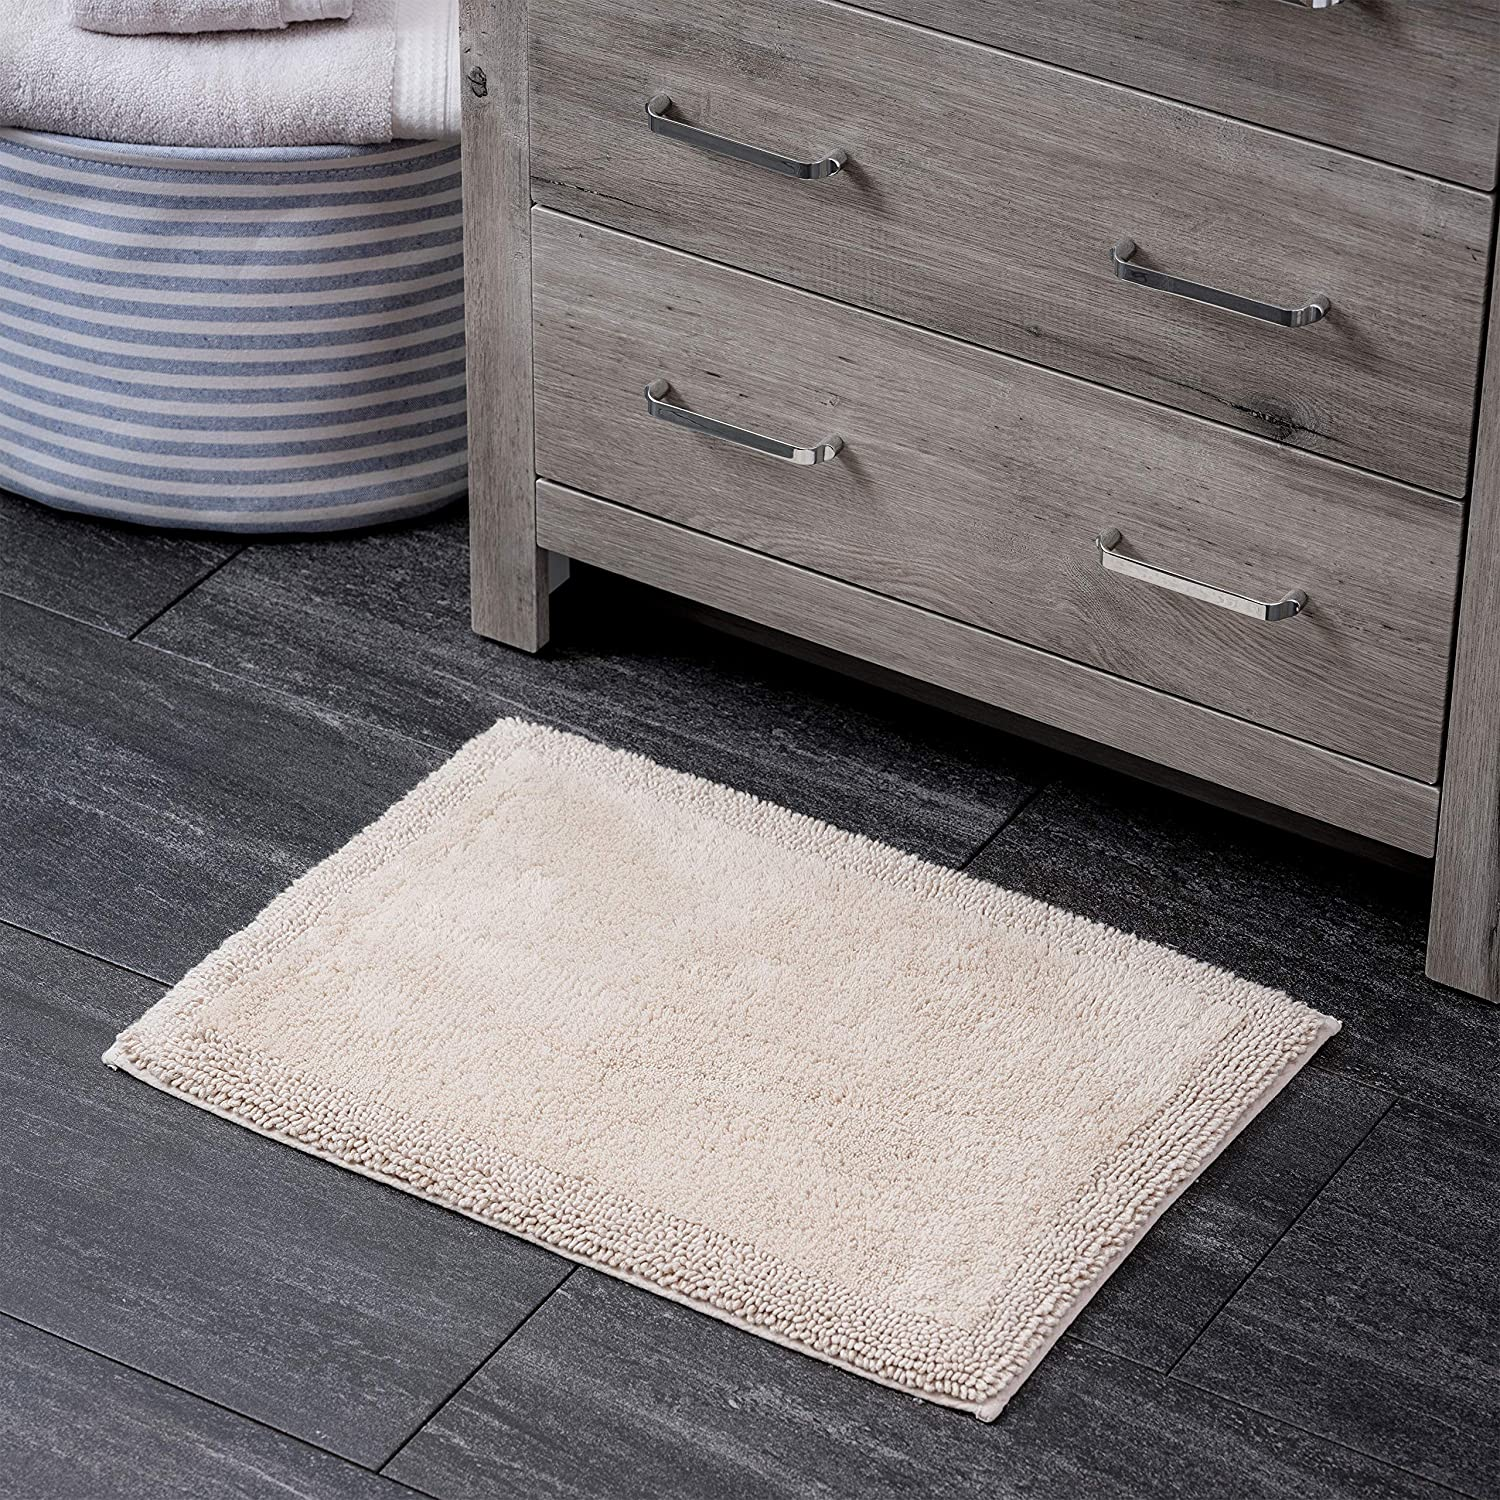 Welhome 100% Turkish Cotton Bathroom Rug - Luxurious - Soft & Thick - Highly Absorbent - Hotel Spa Collection - 17